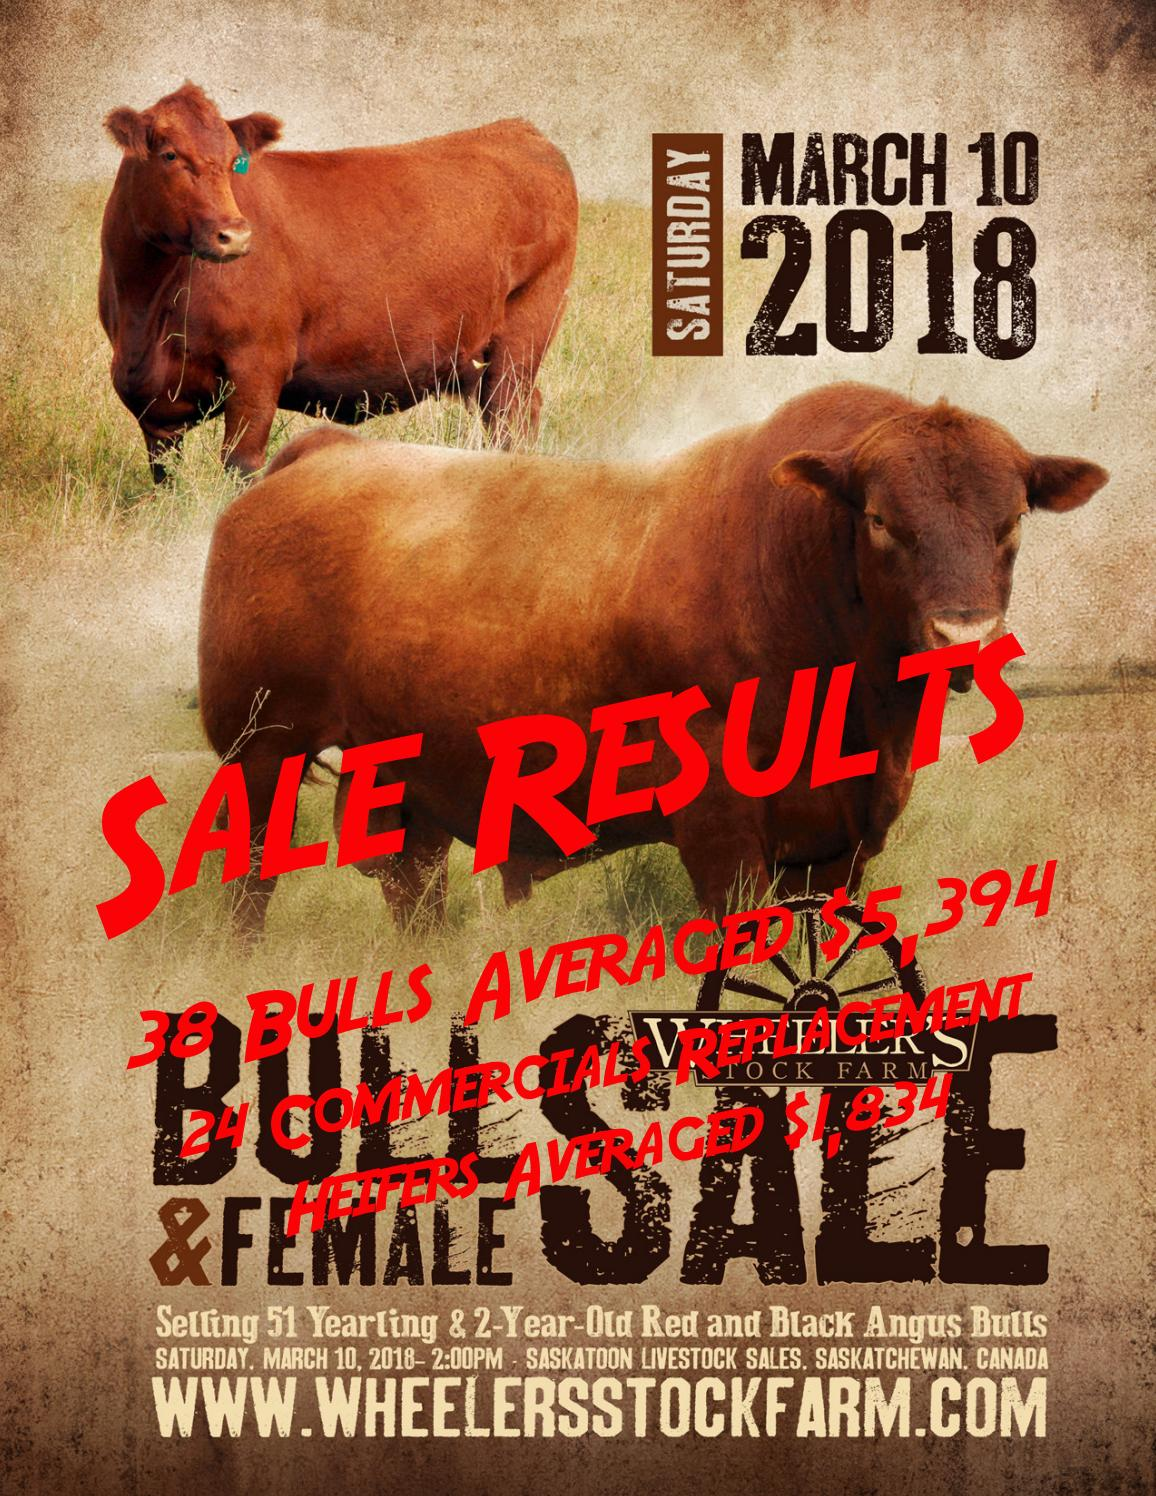 2018 Wheeler Stock Farms Bull & Female Sale Results by